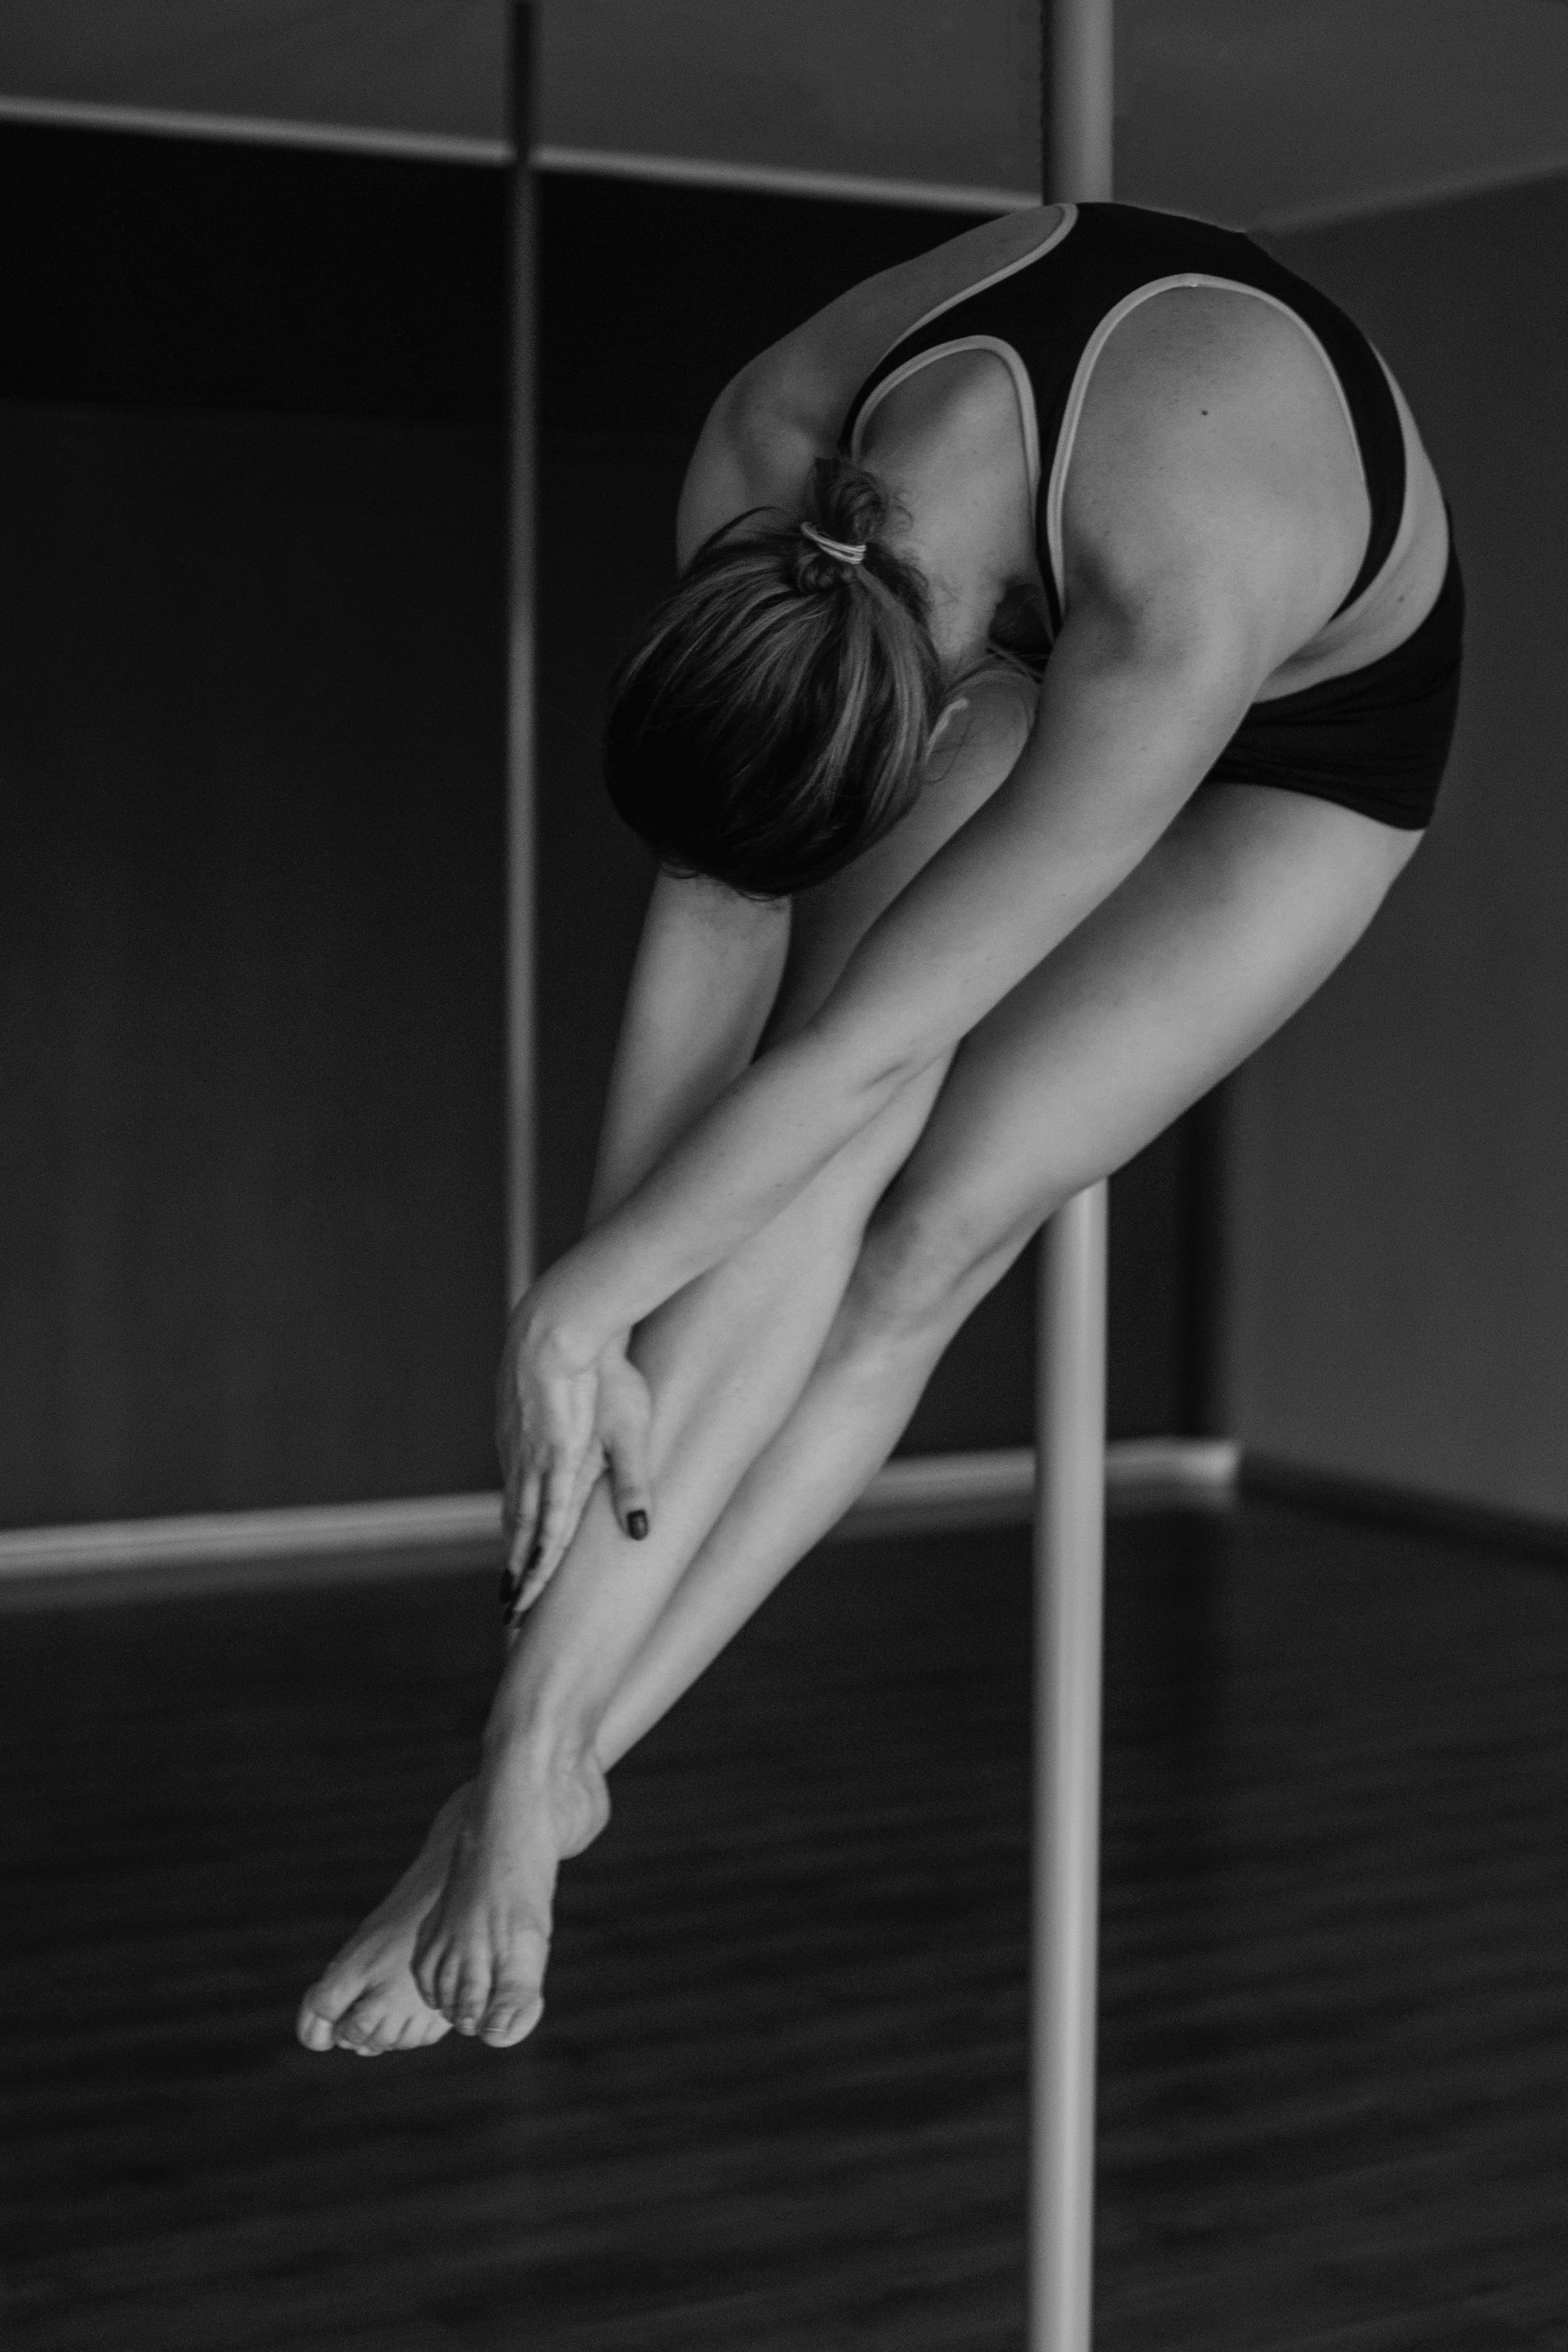 Grayscale Photography of Woman on Pole